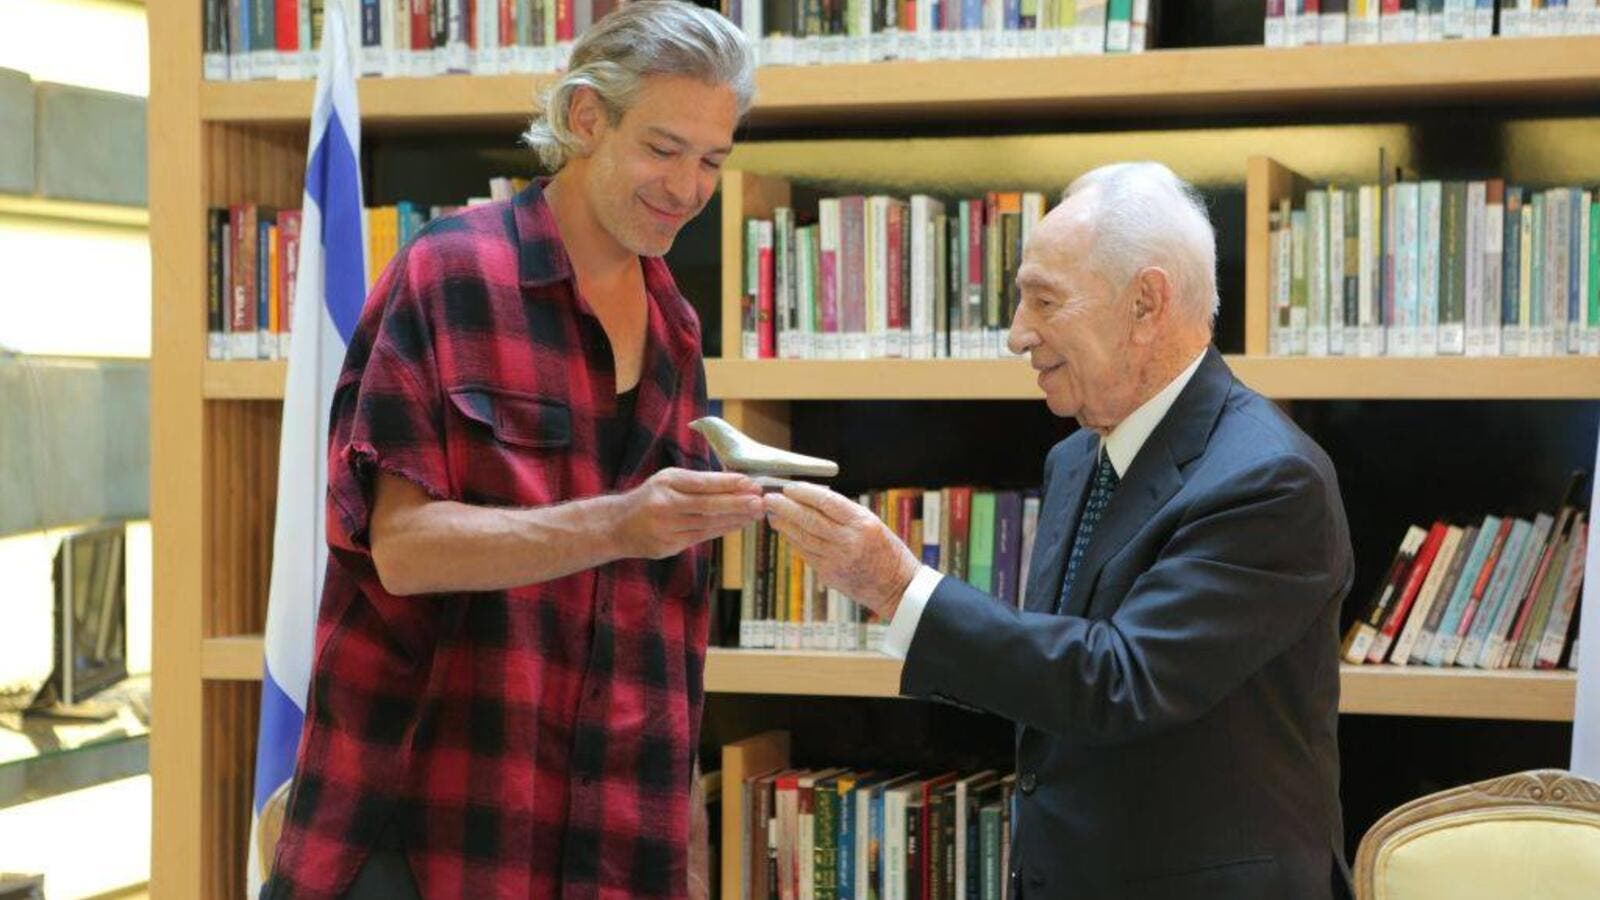 Matisyahu with the late Israeli President Shimon Peres. (Facebook)